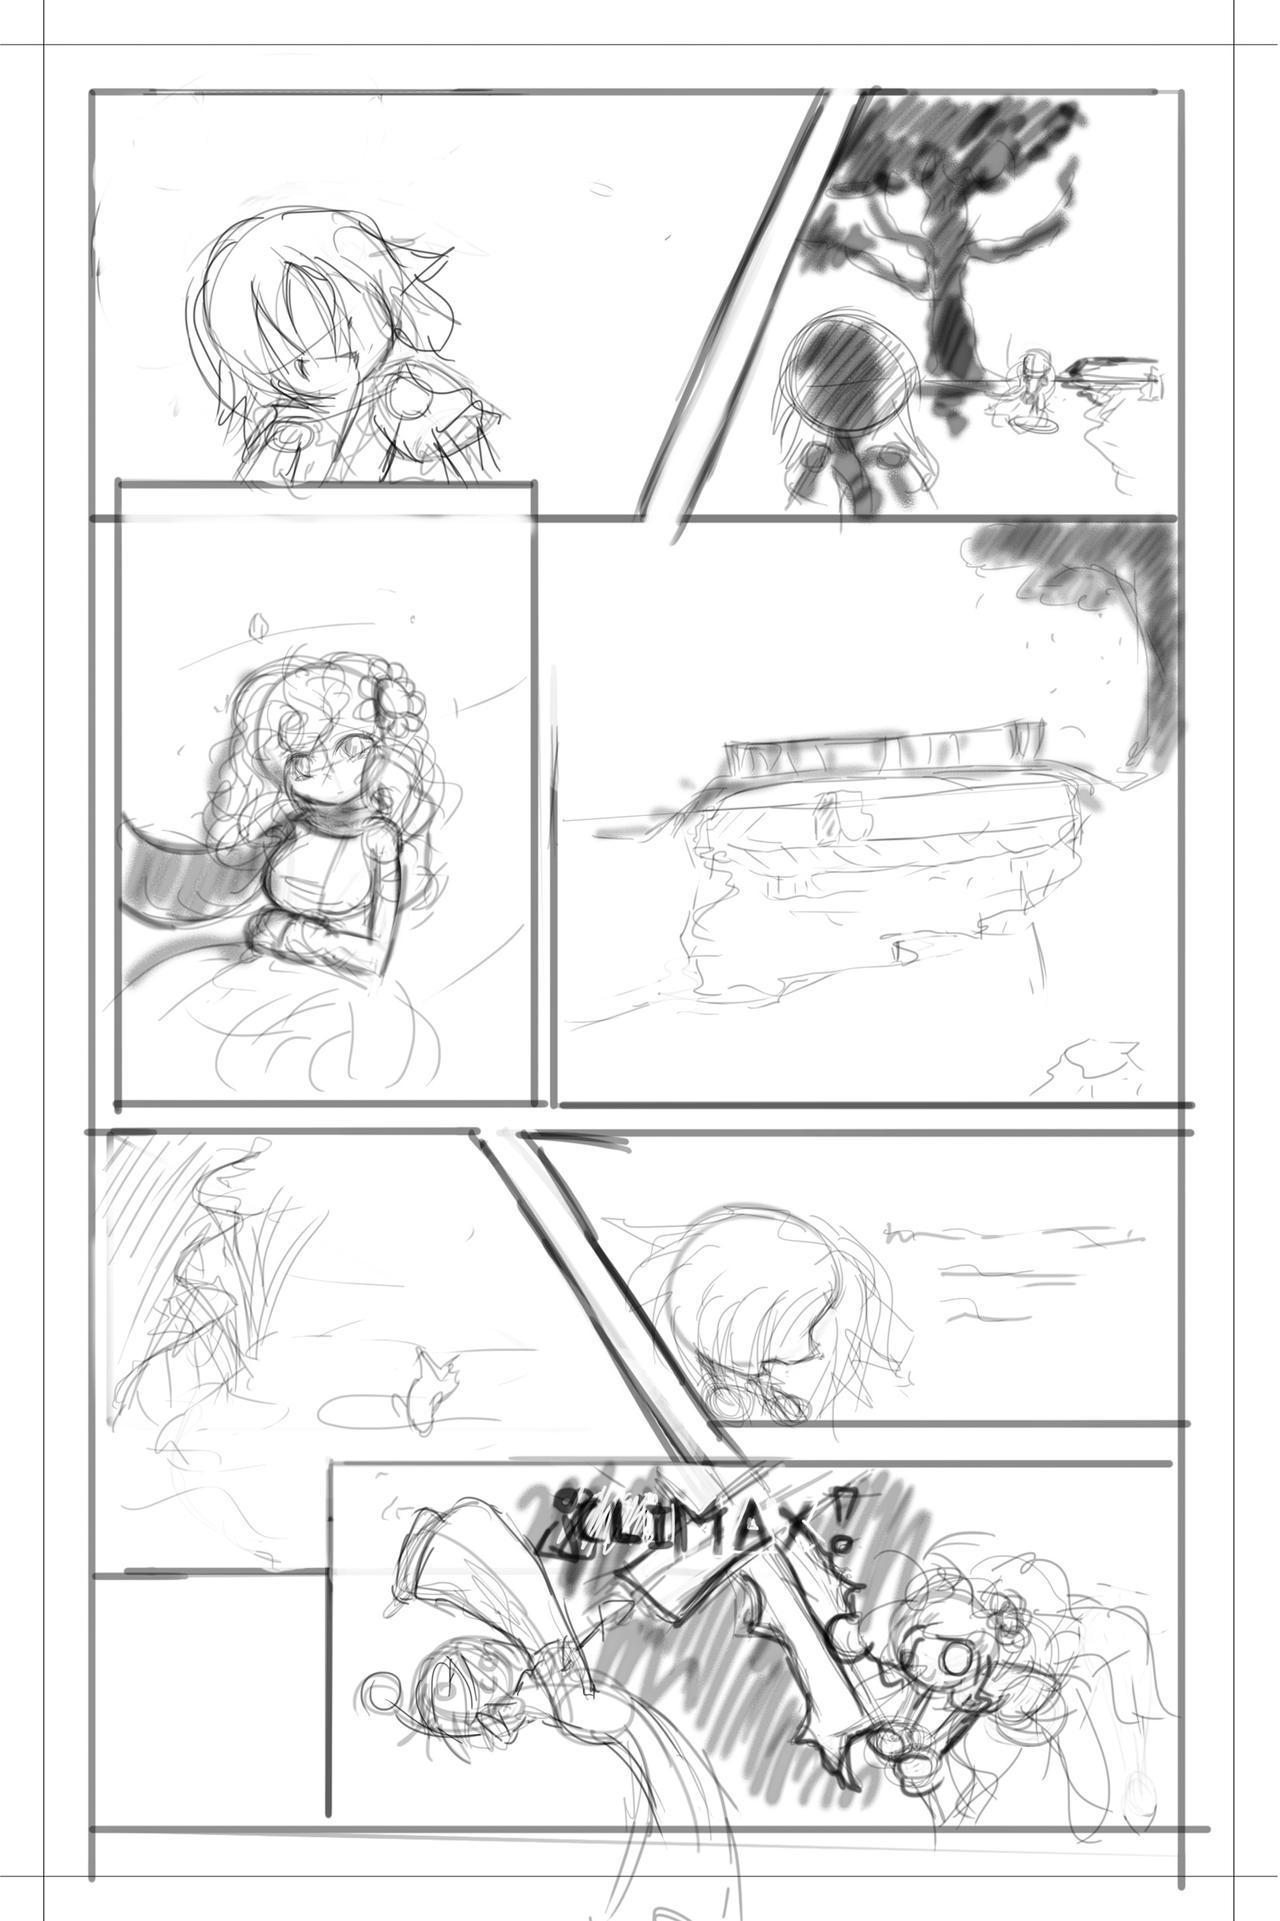 Manga template test by ptolemaiosls on deviantart manga template test by ptolemaiosls manga template test by ptolemaiosls pronofoot35fo Gallery